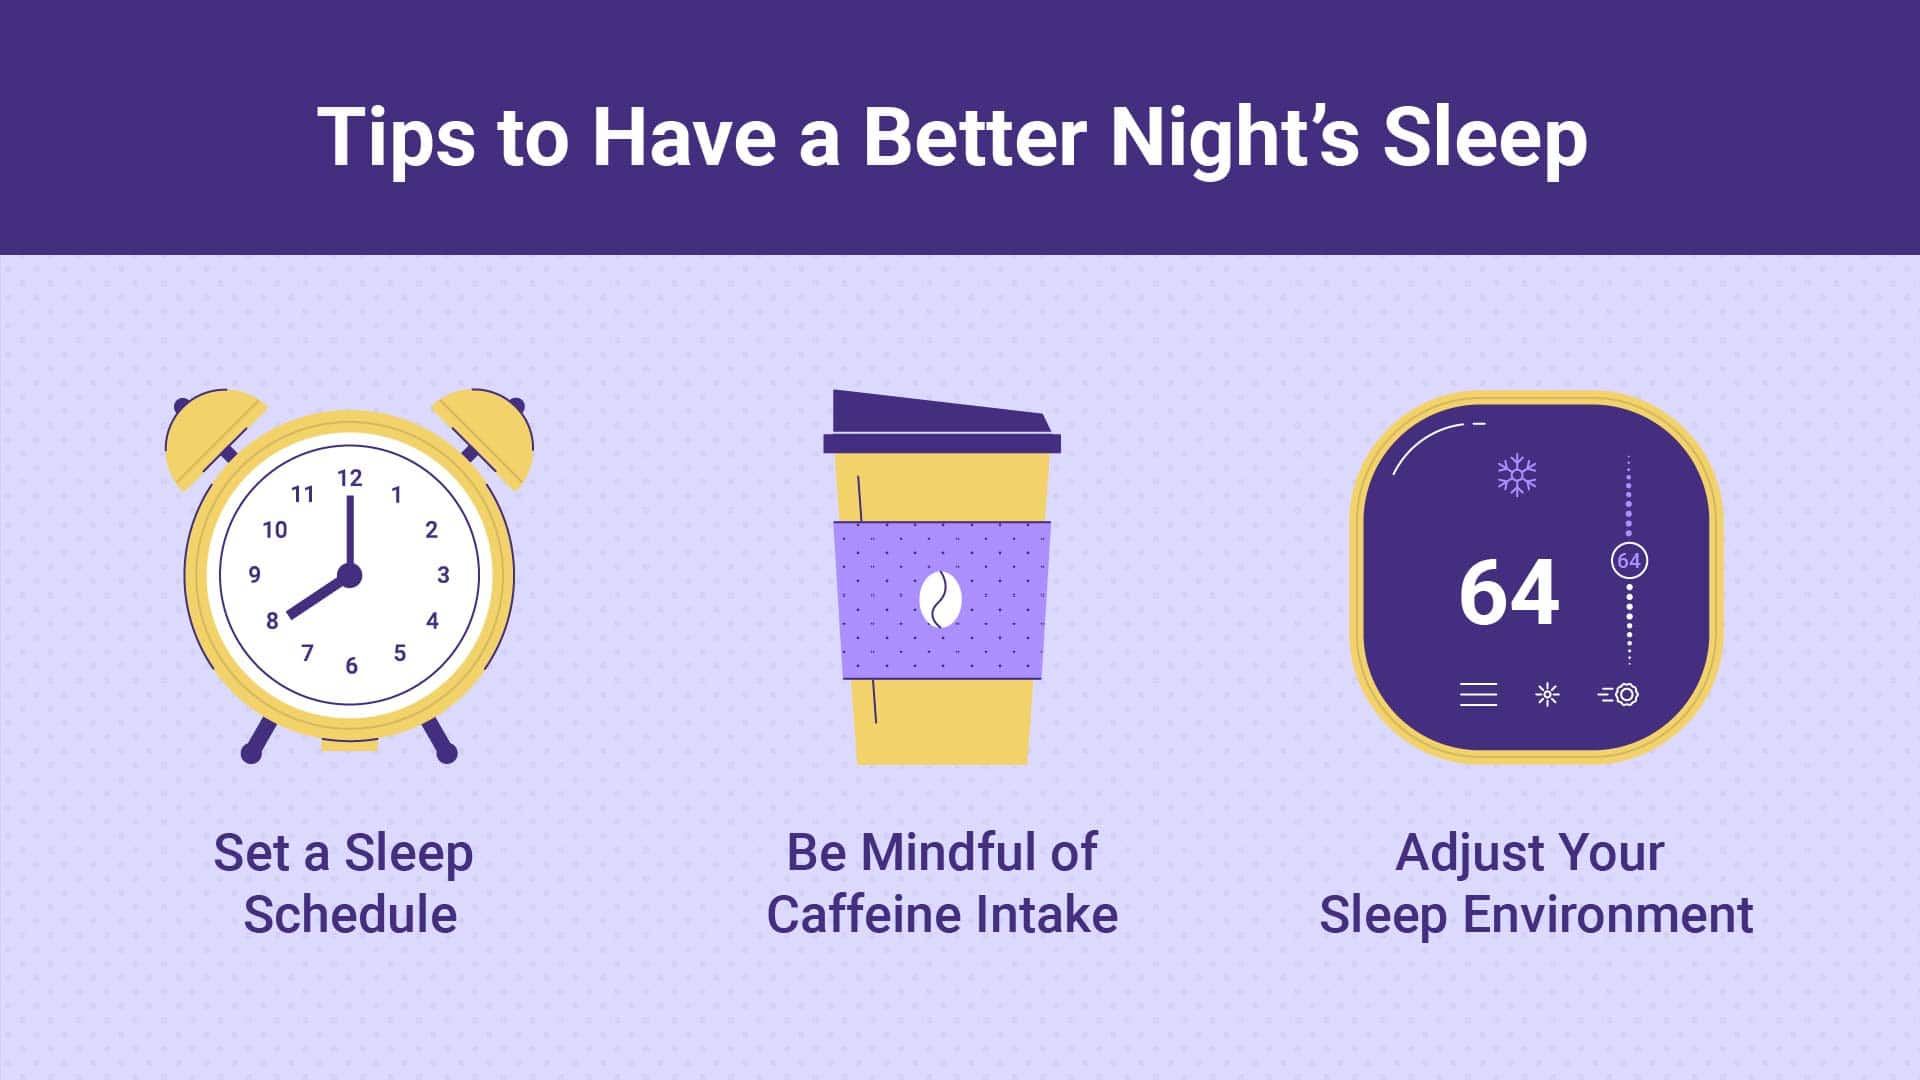 Tips to have a Better Night's Sleep